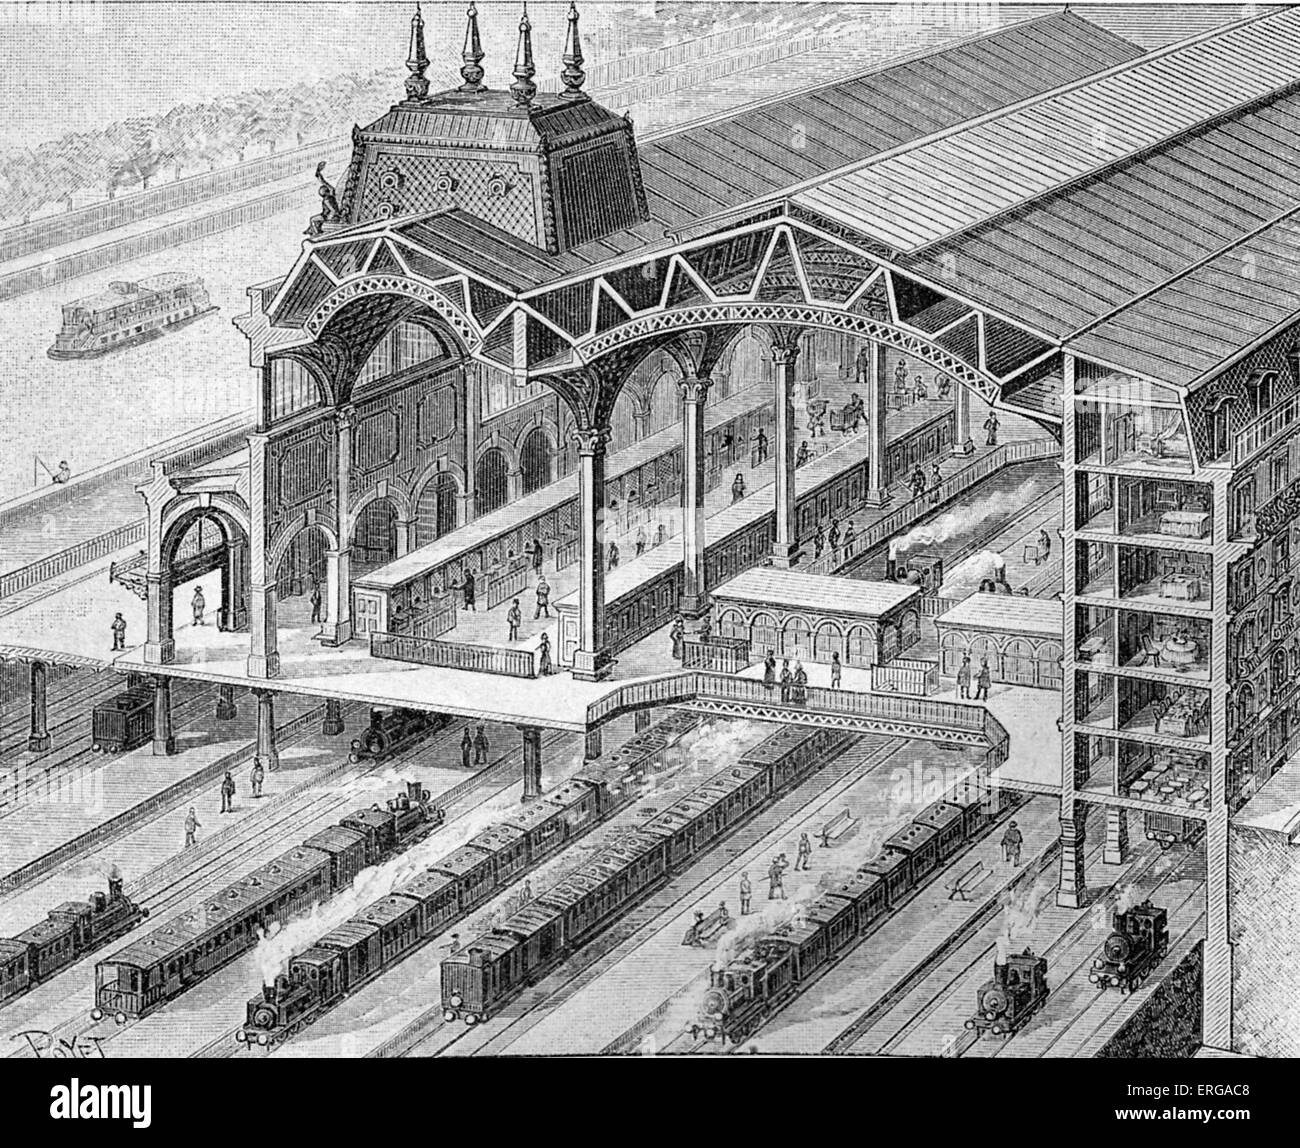 Overview of the Quai d'Orsay railway station during construction by the Orleans railroad company in 1898. The station Stock Photo